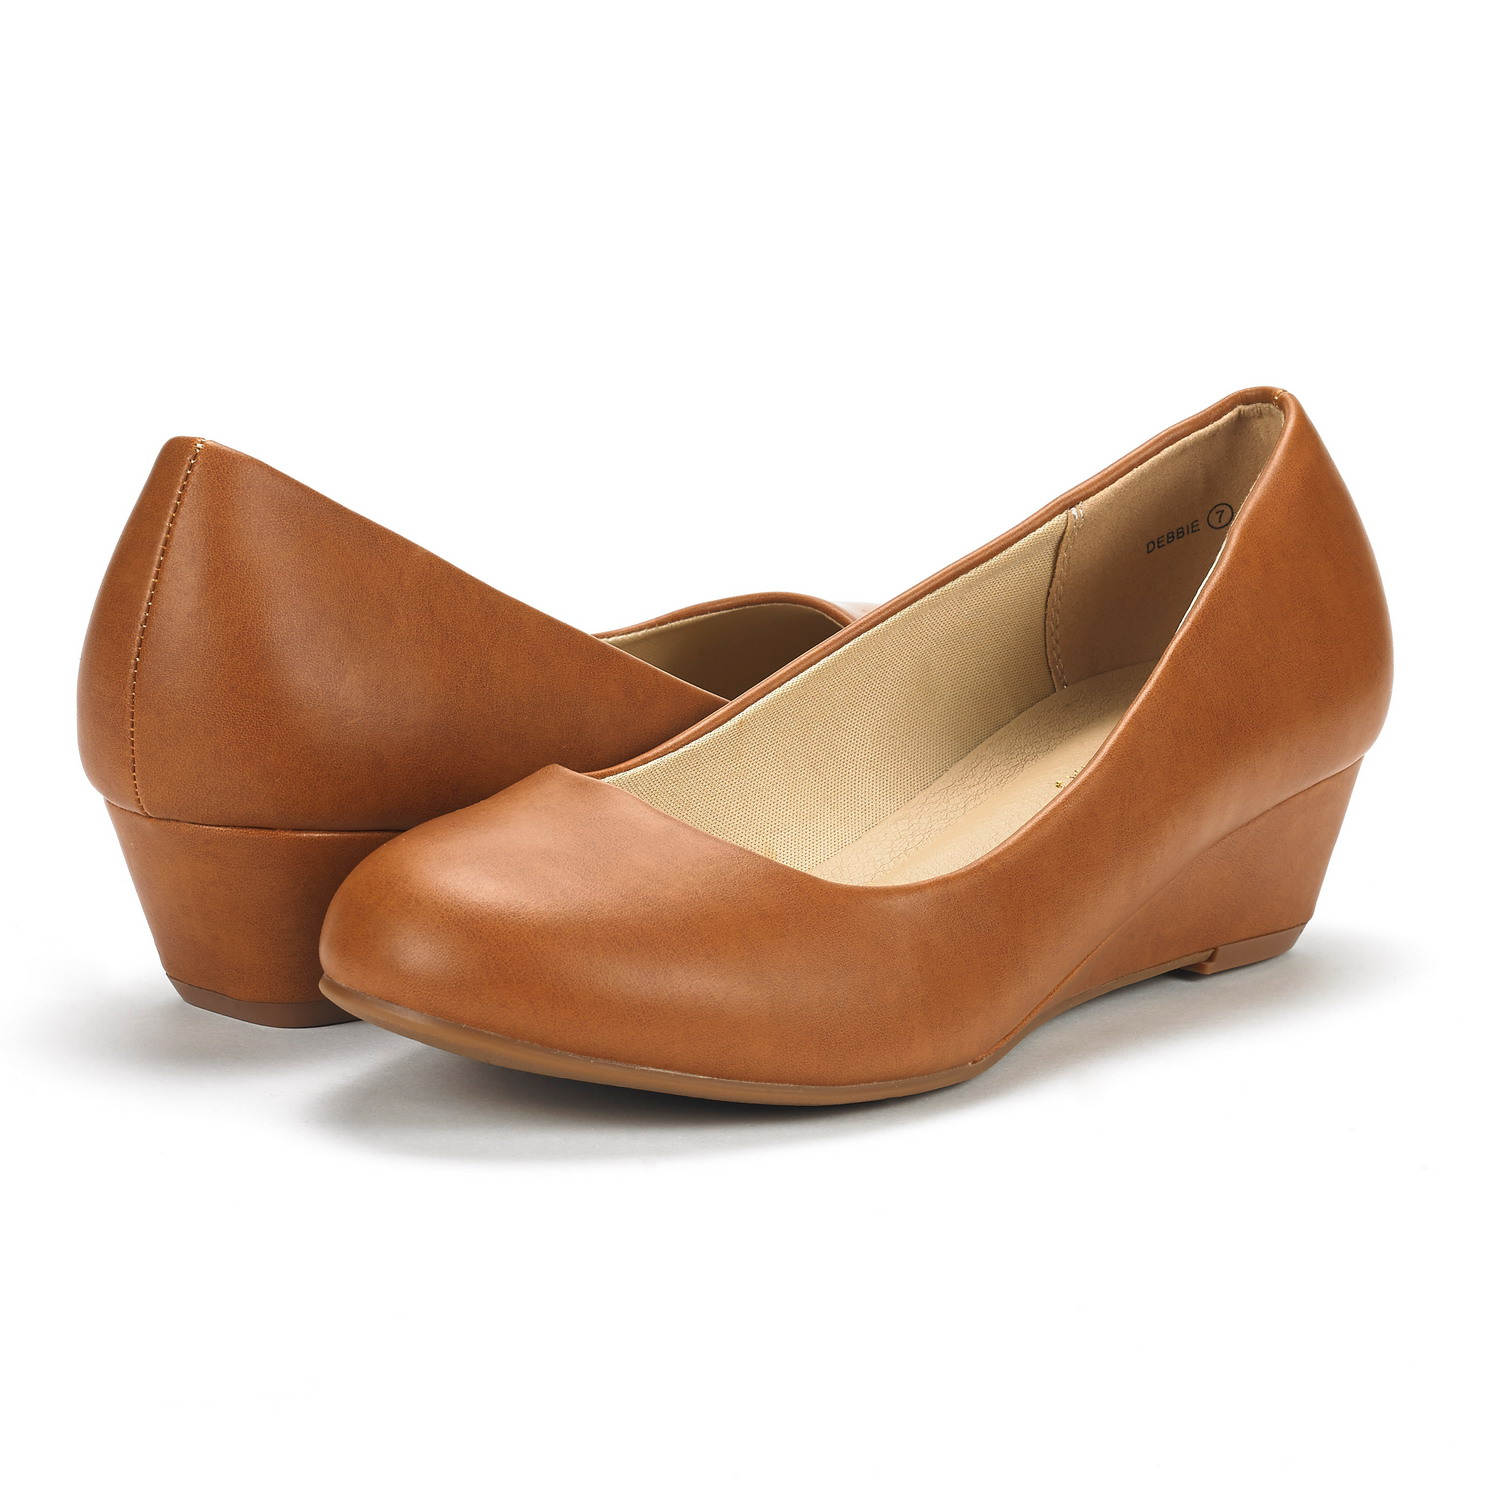 DREAM-PAIRS-Women-039-s-Mid-Wedge-Heel-Shoes-Slip-On-Comfort-Dress-Shoes-Suede-PU thumbnail 12